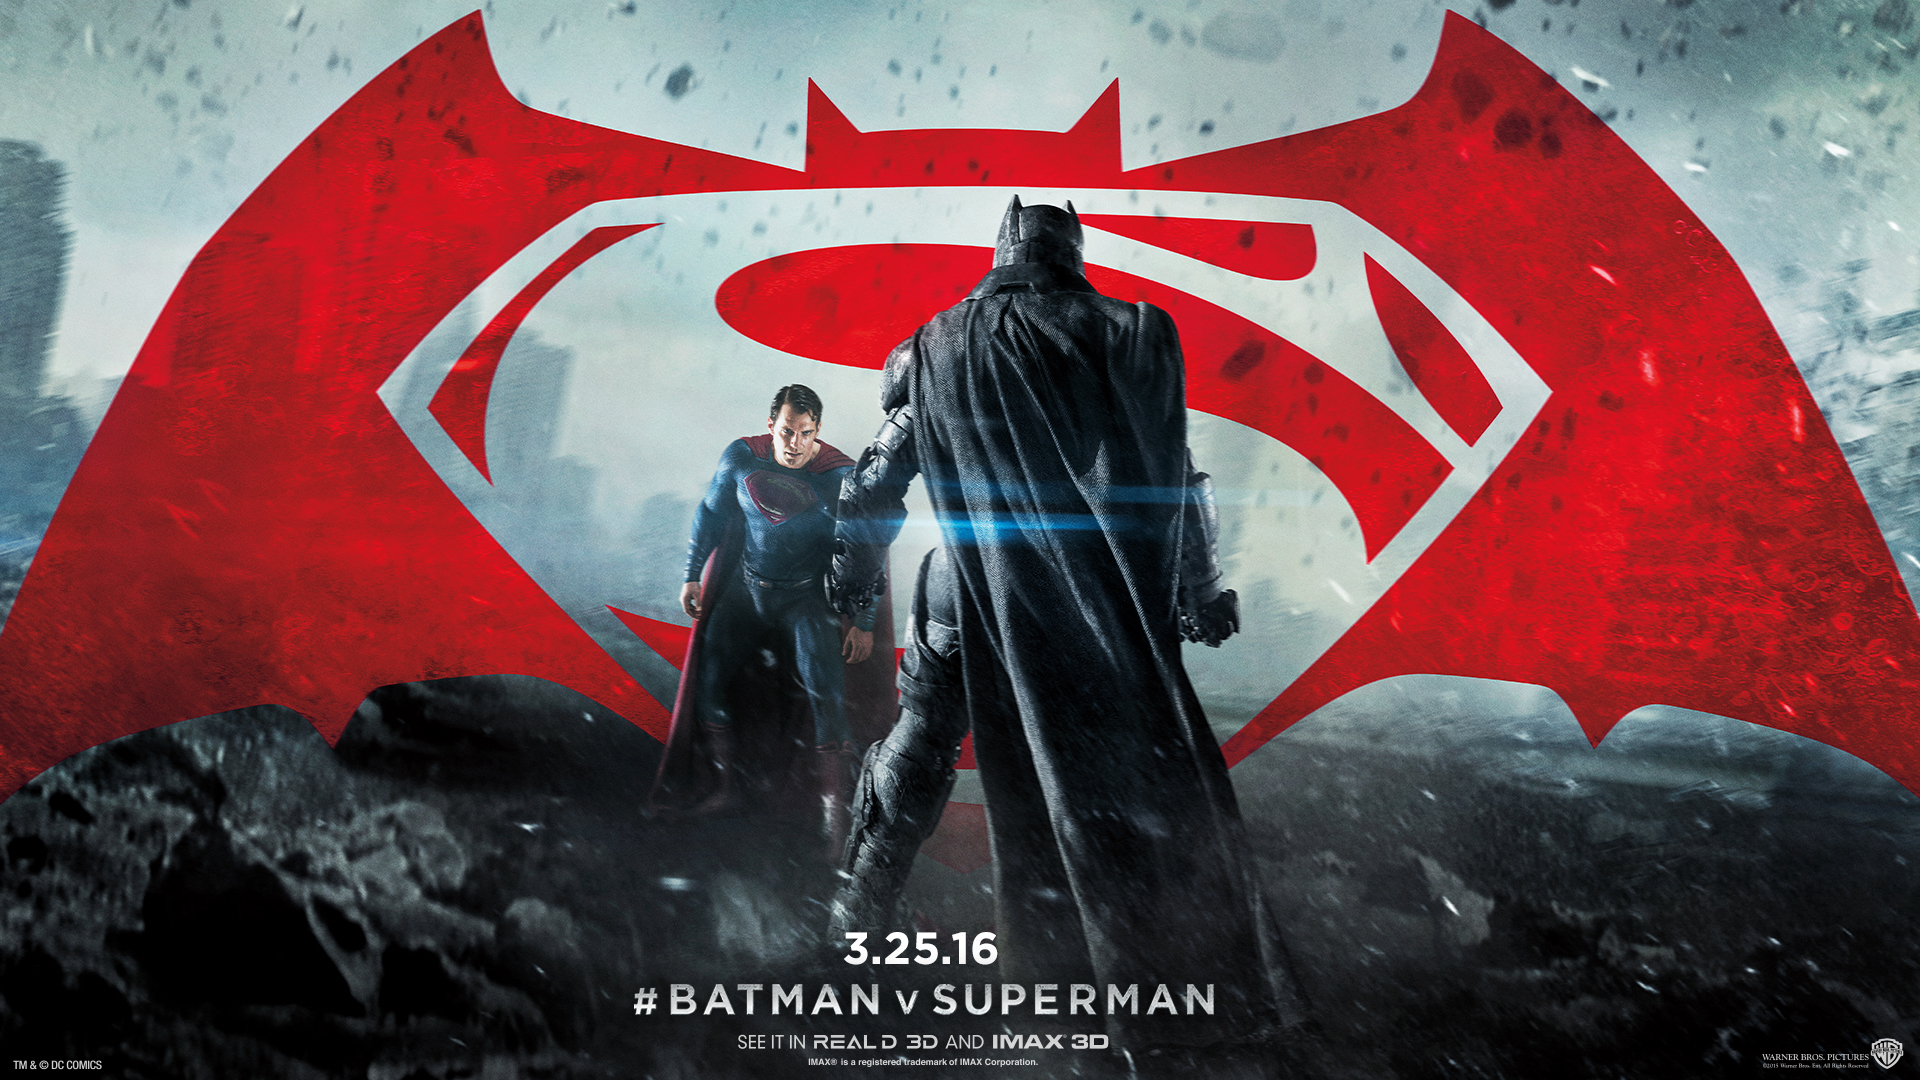 Batman vs superman wallpaper   SF Wallpaper 1920x1080